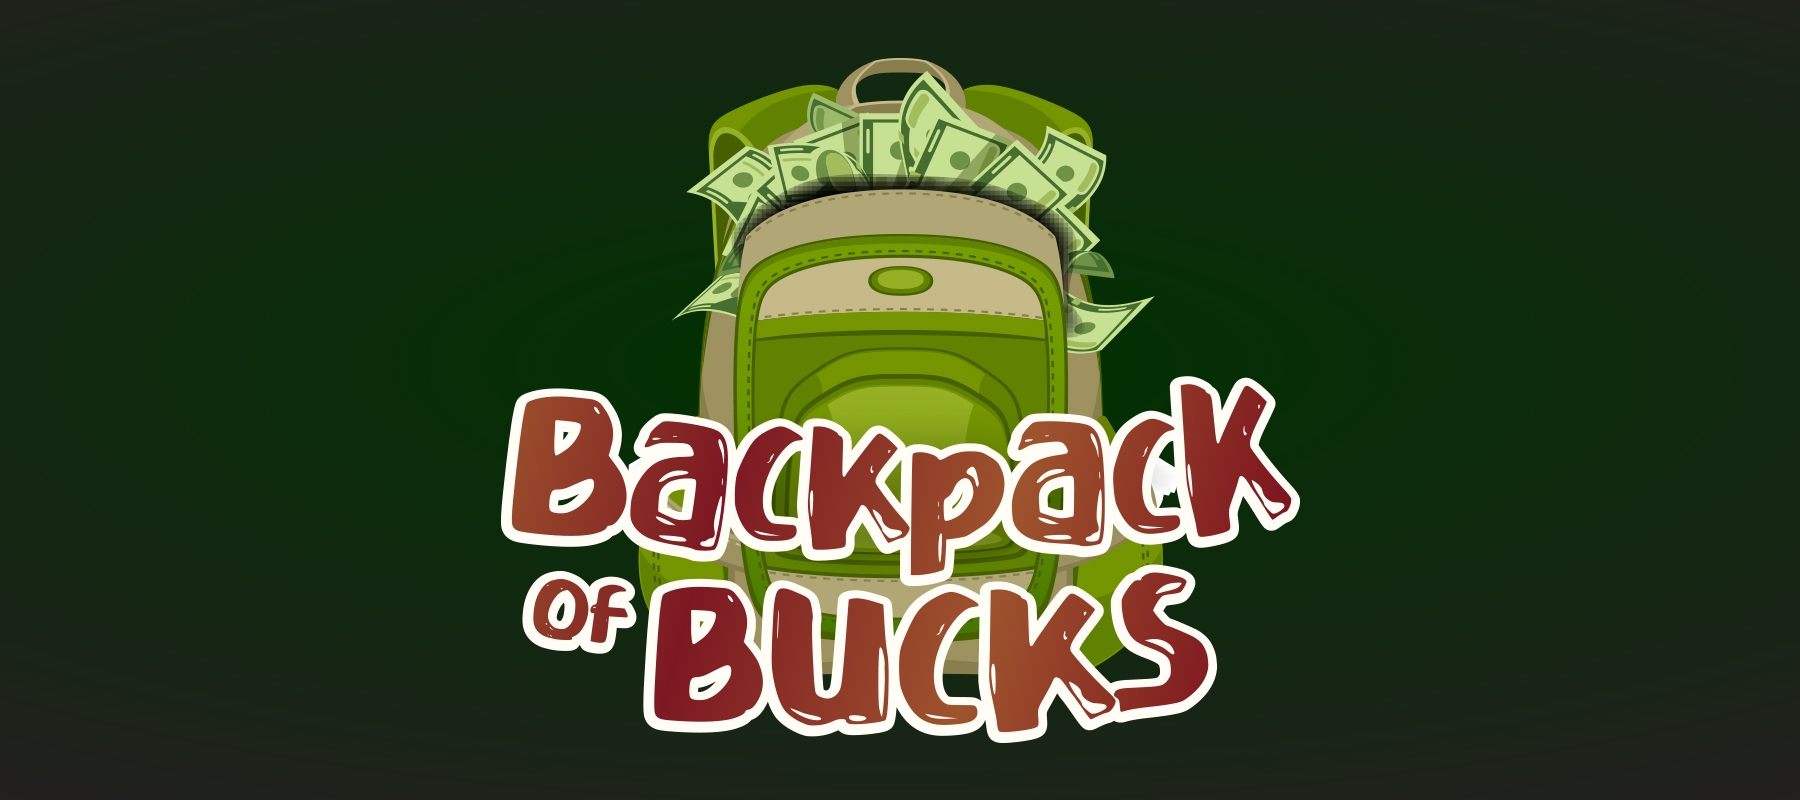 Backpack of Bucks